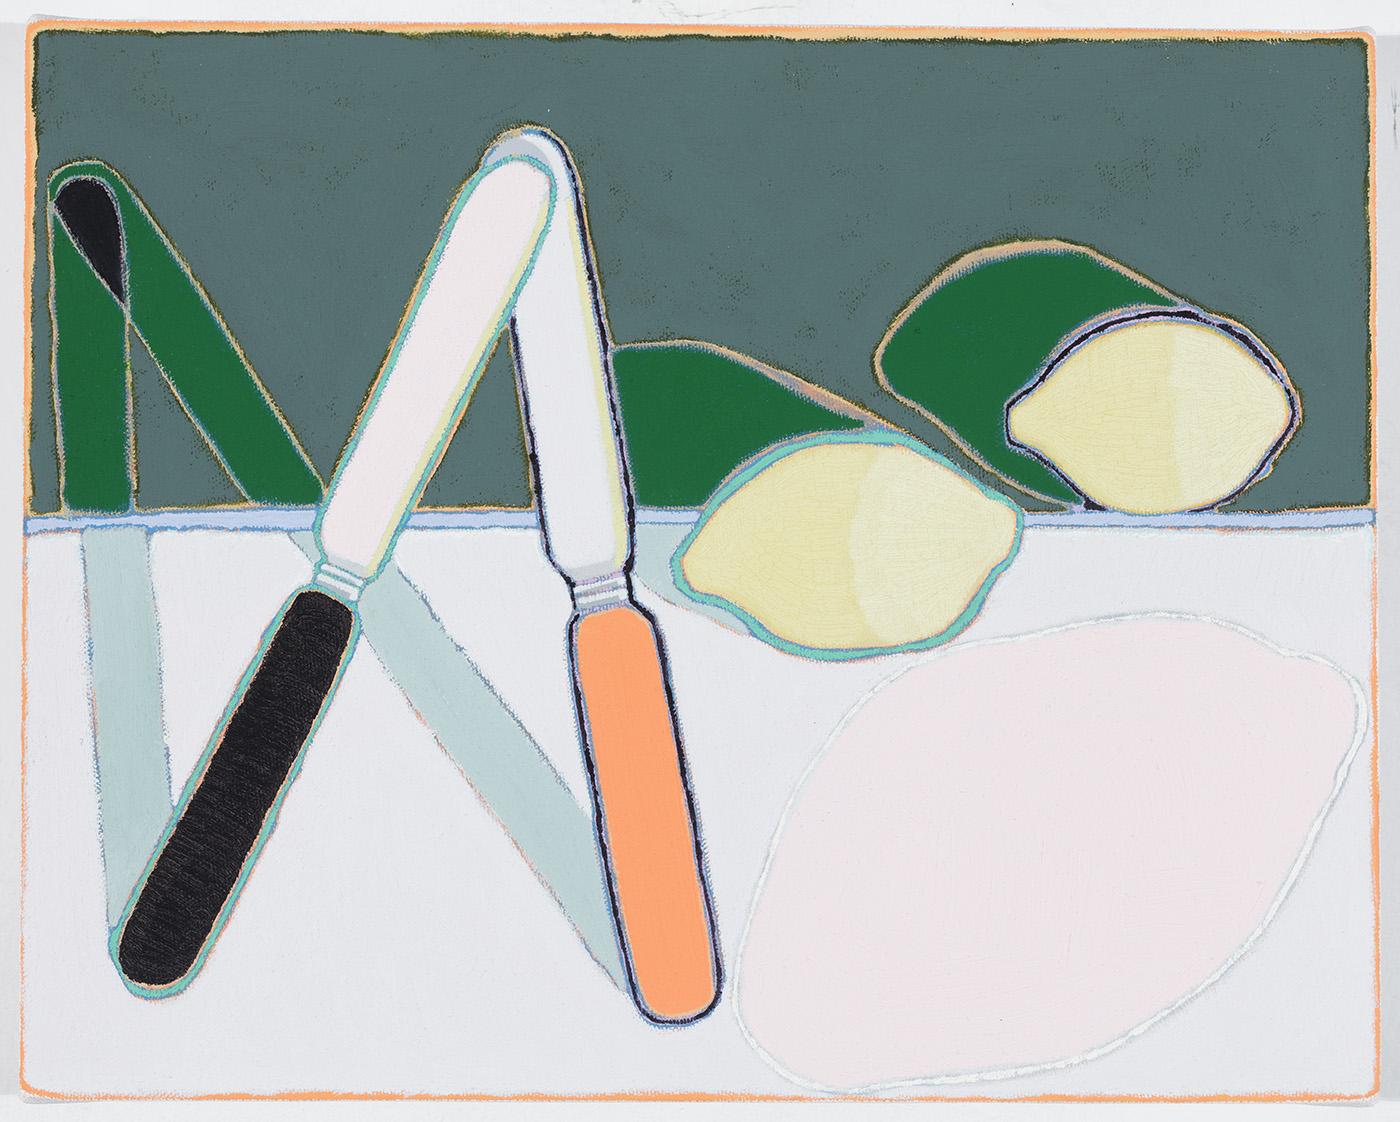 "Butter Knives and Lemons,   11 x 14"",   oil on canvas,   2014"